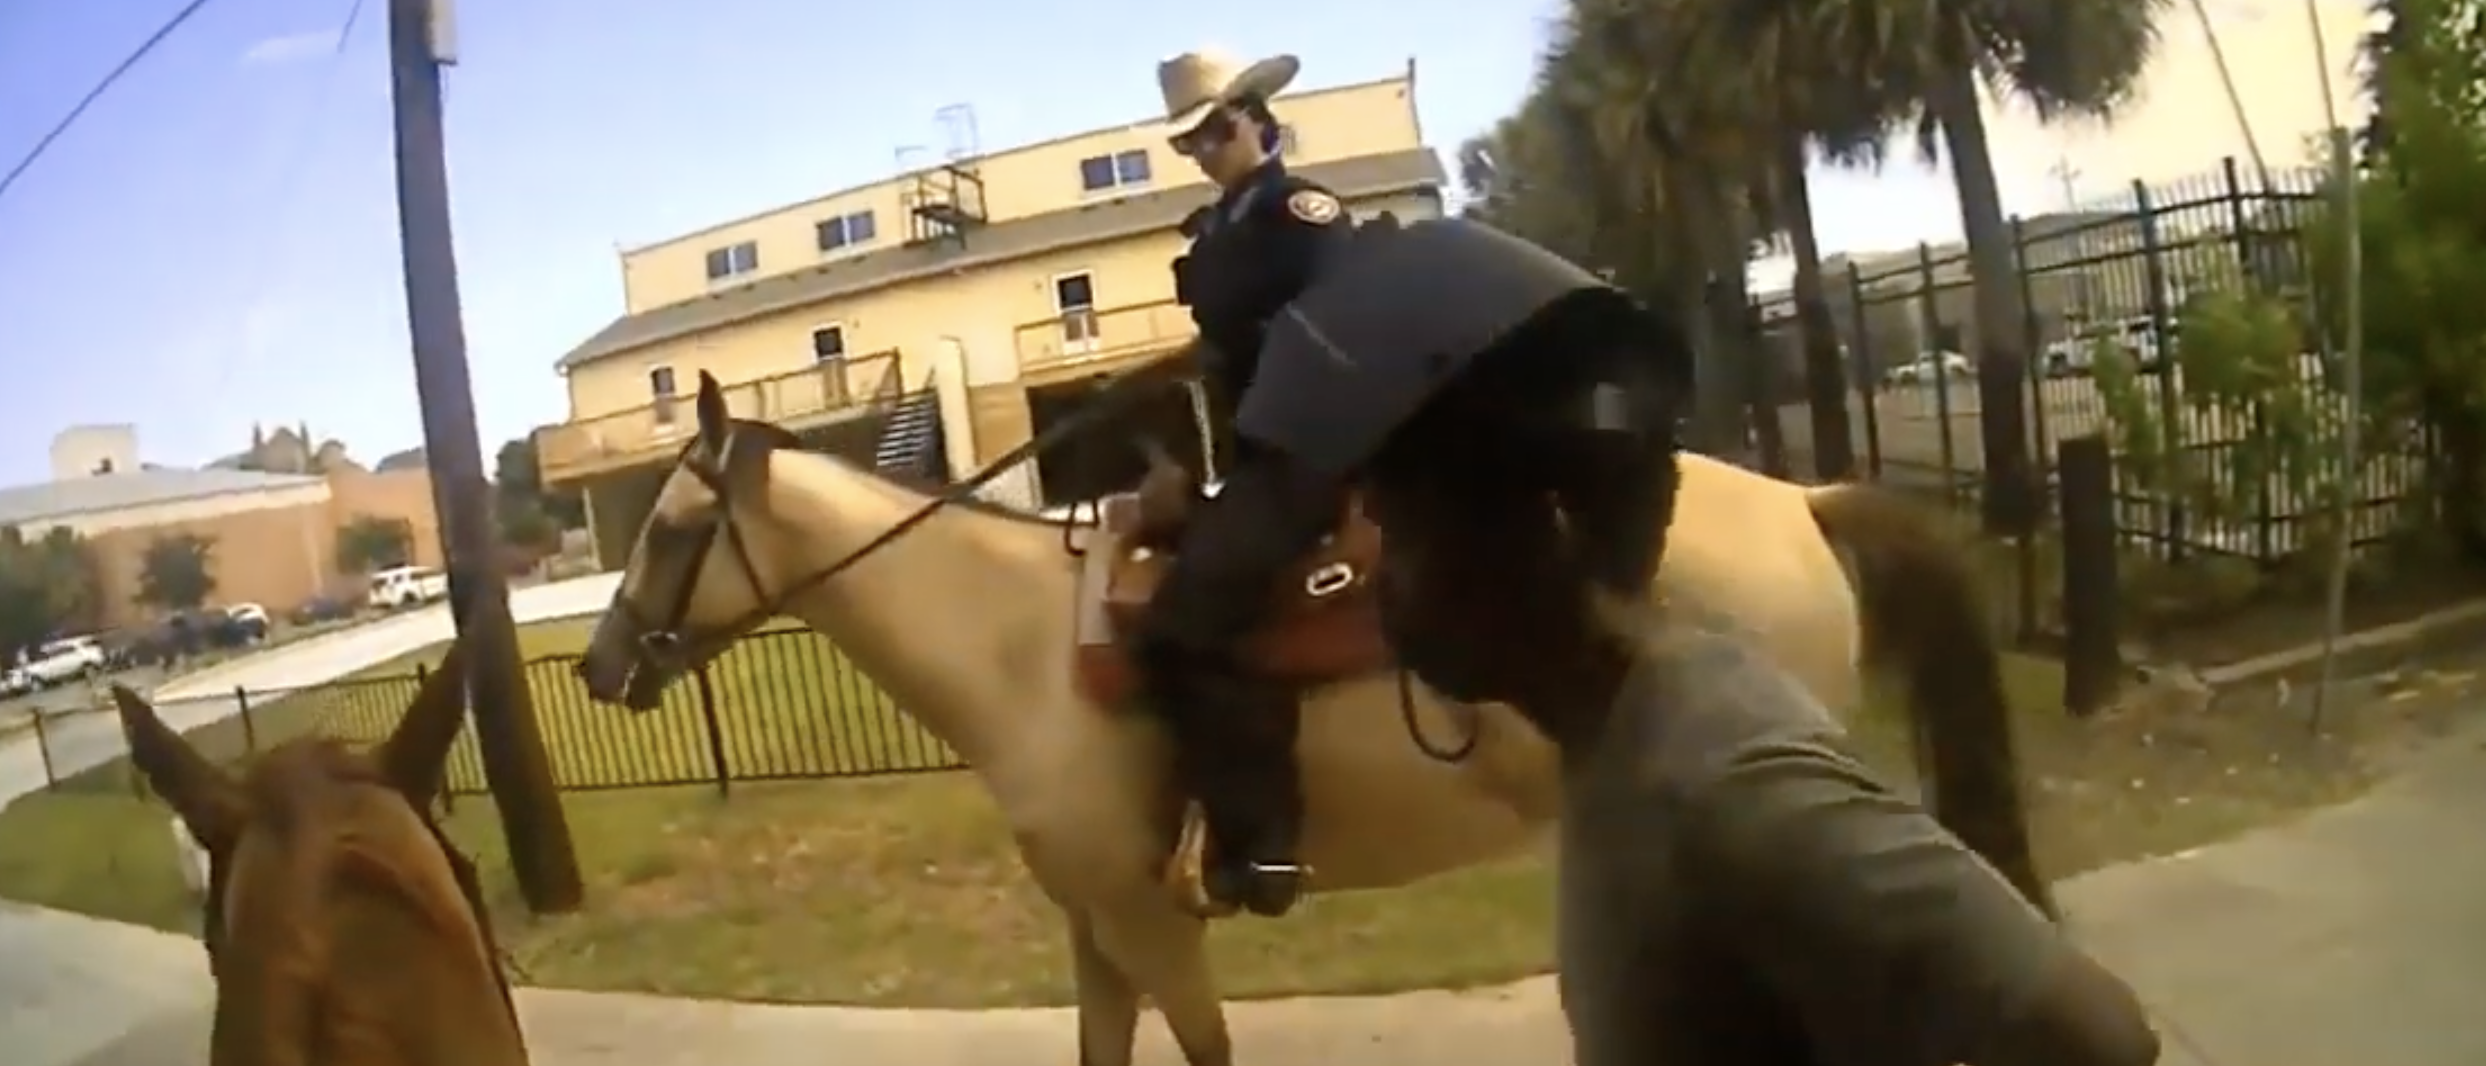 Body Cam Footage Shows Officers Leading Tied Up Mentally Ill Black Man Down Road On Horseback